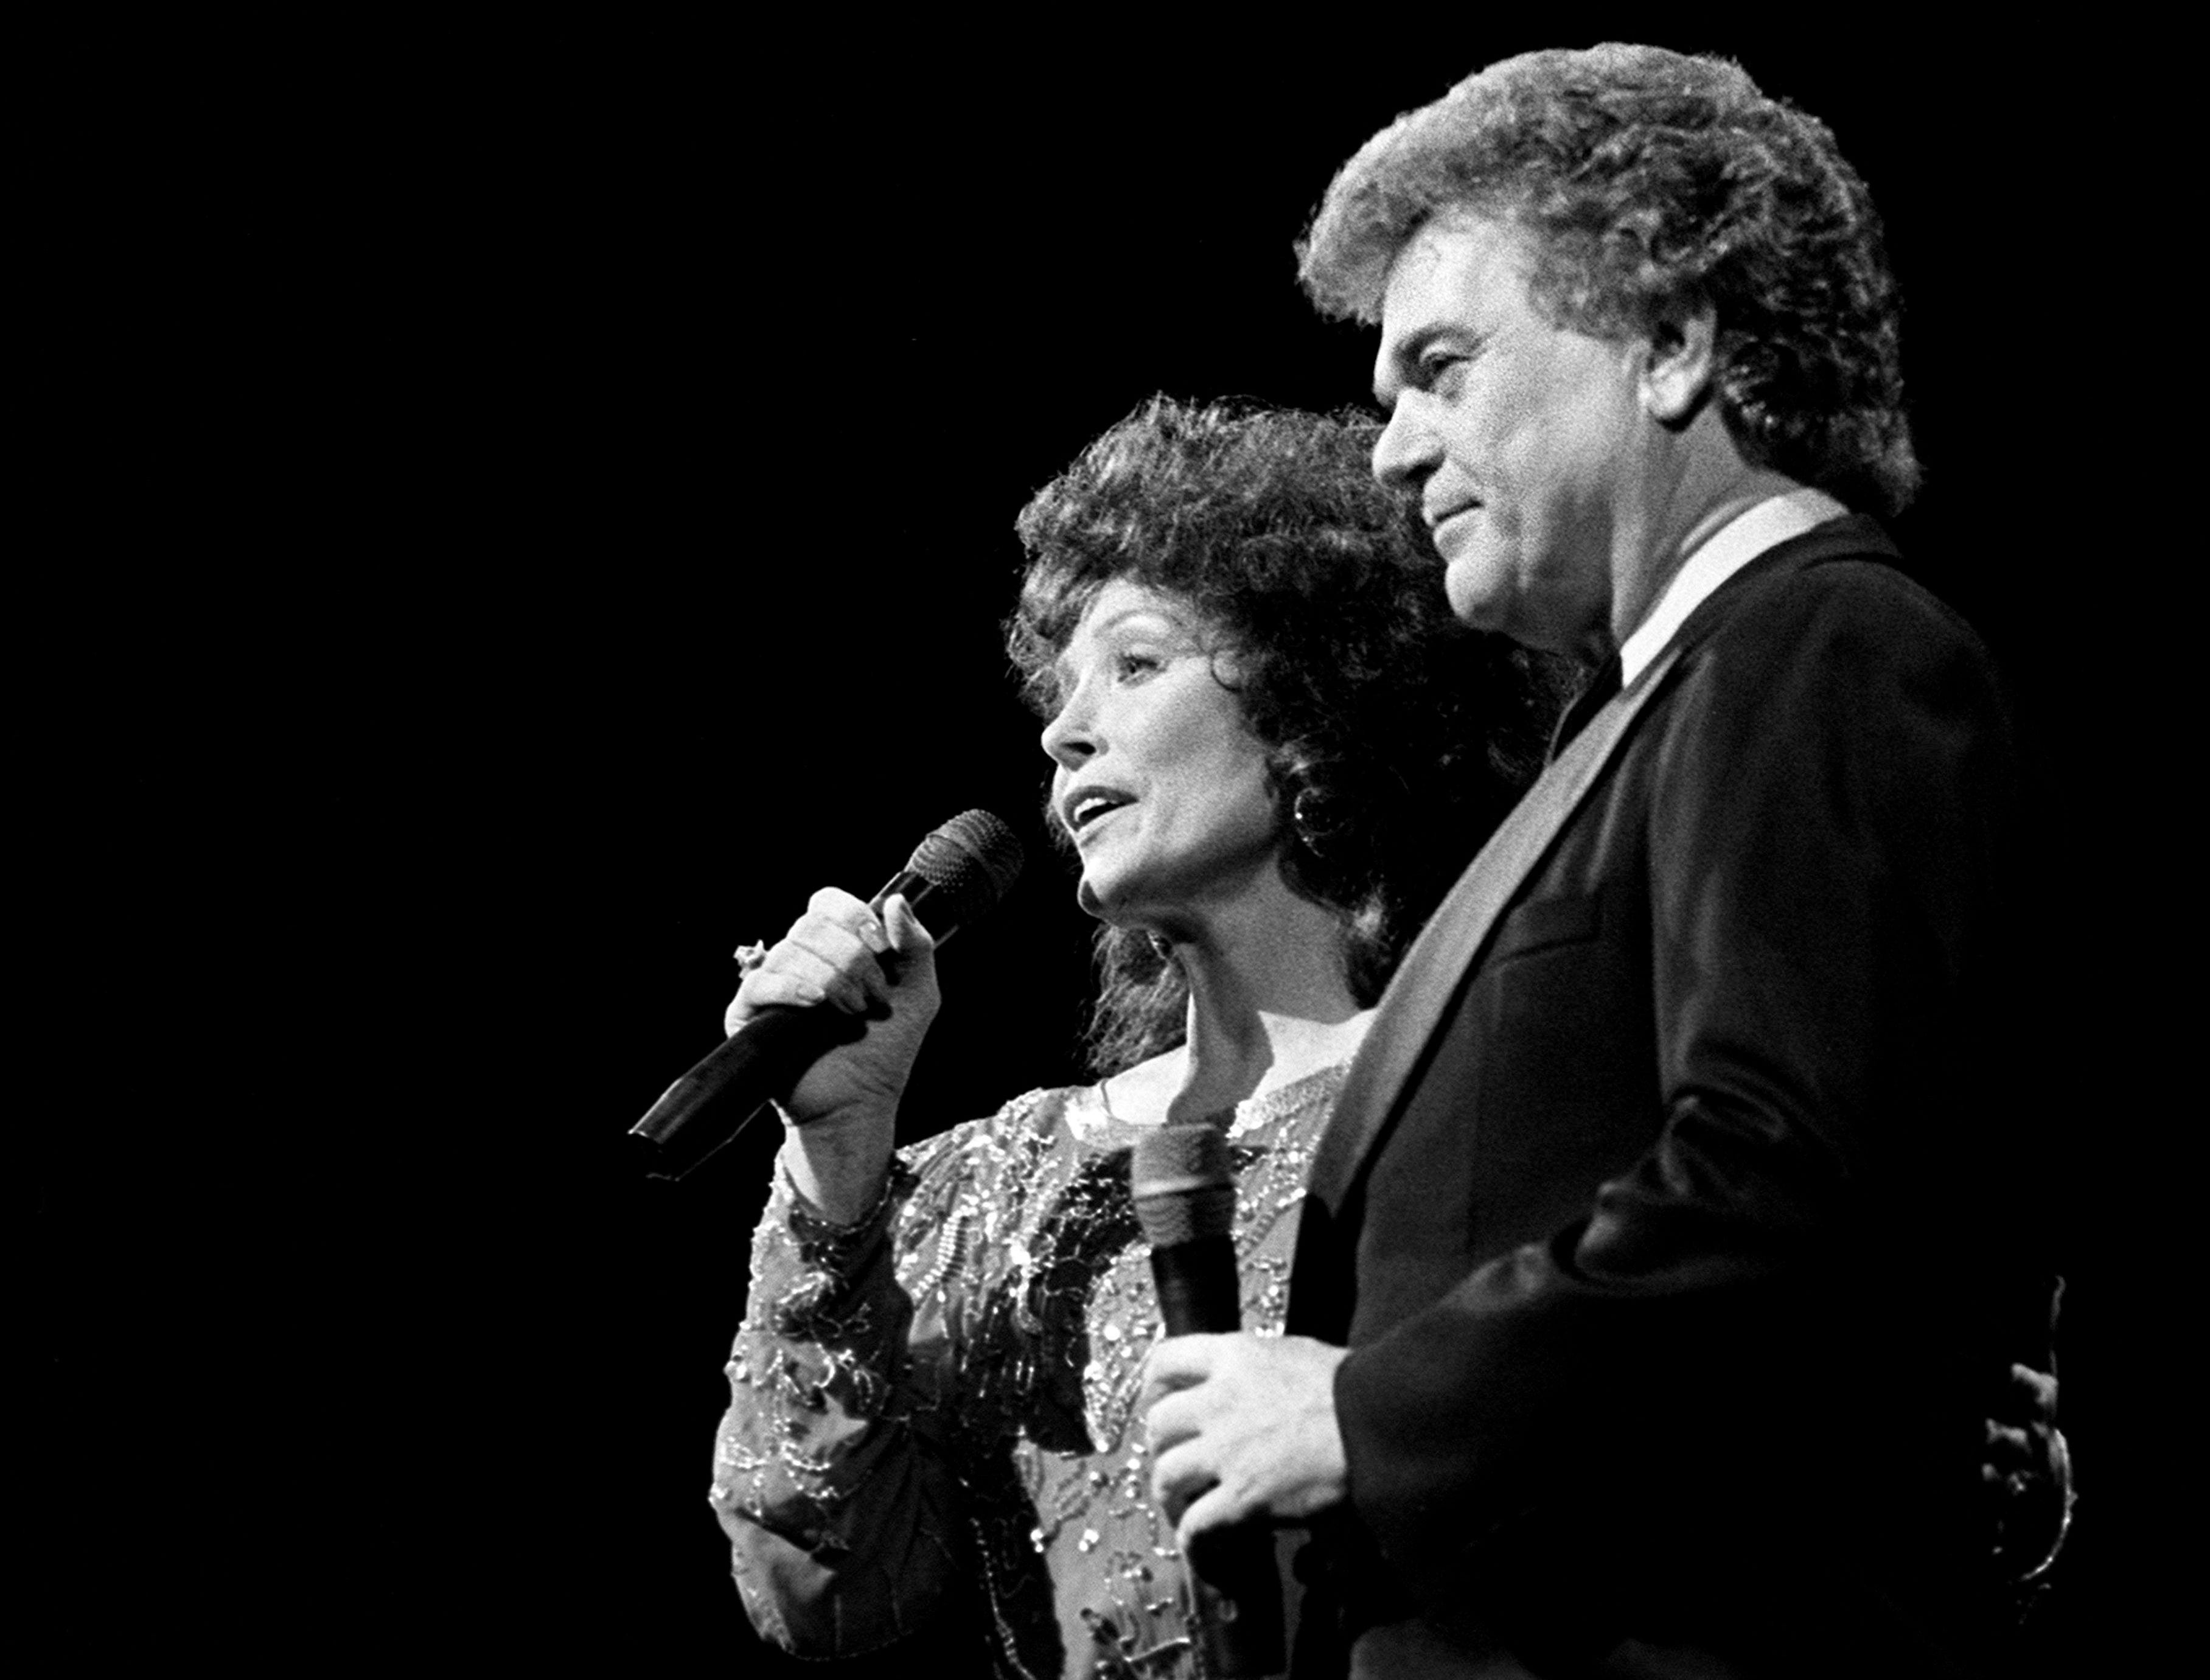 """Loretta Lynn, left, and Conway Twitty reunited onstage to sing a snippet of their """"Louisiana Woman, Mississippi Man"""" during the CMA Awards show at the Grand Ole Opry House Oct. 13, 1986."""